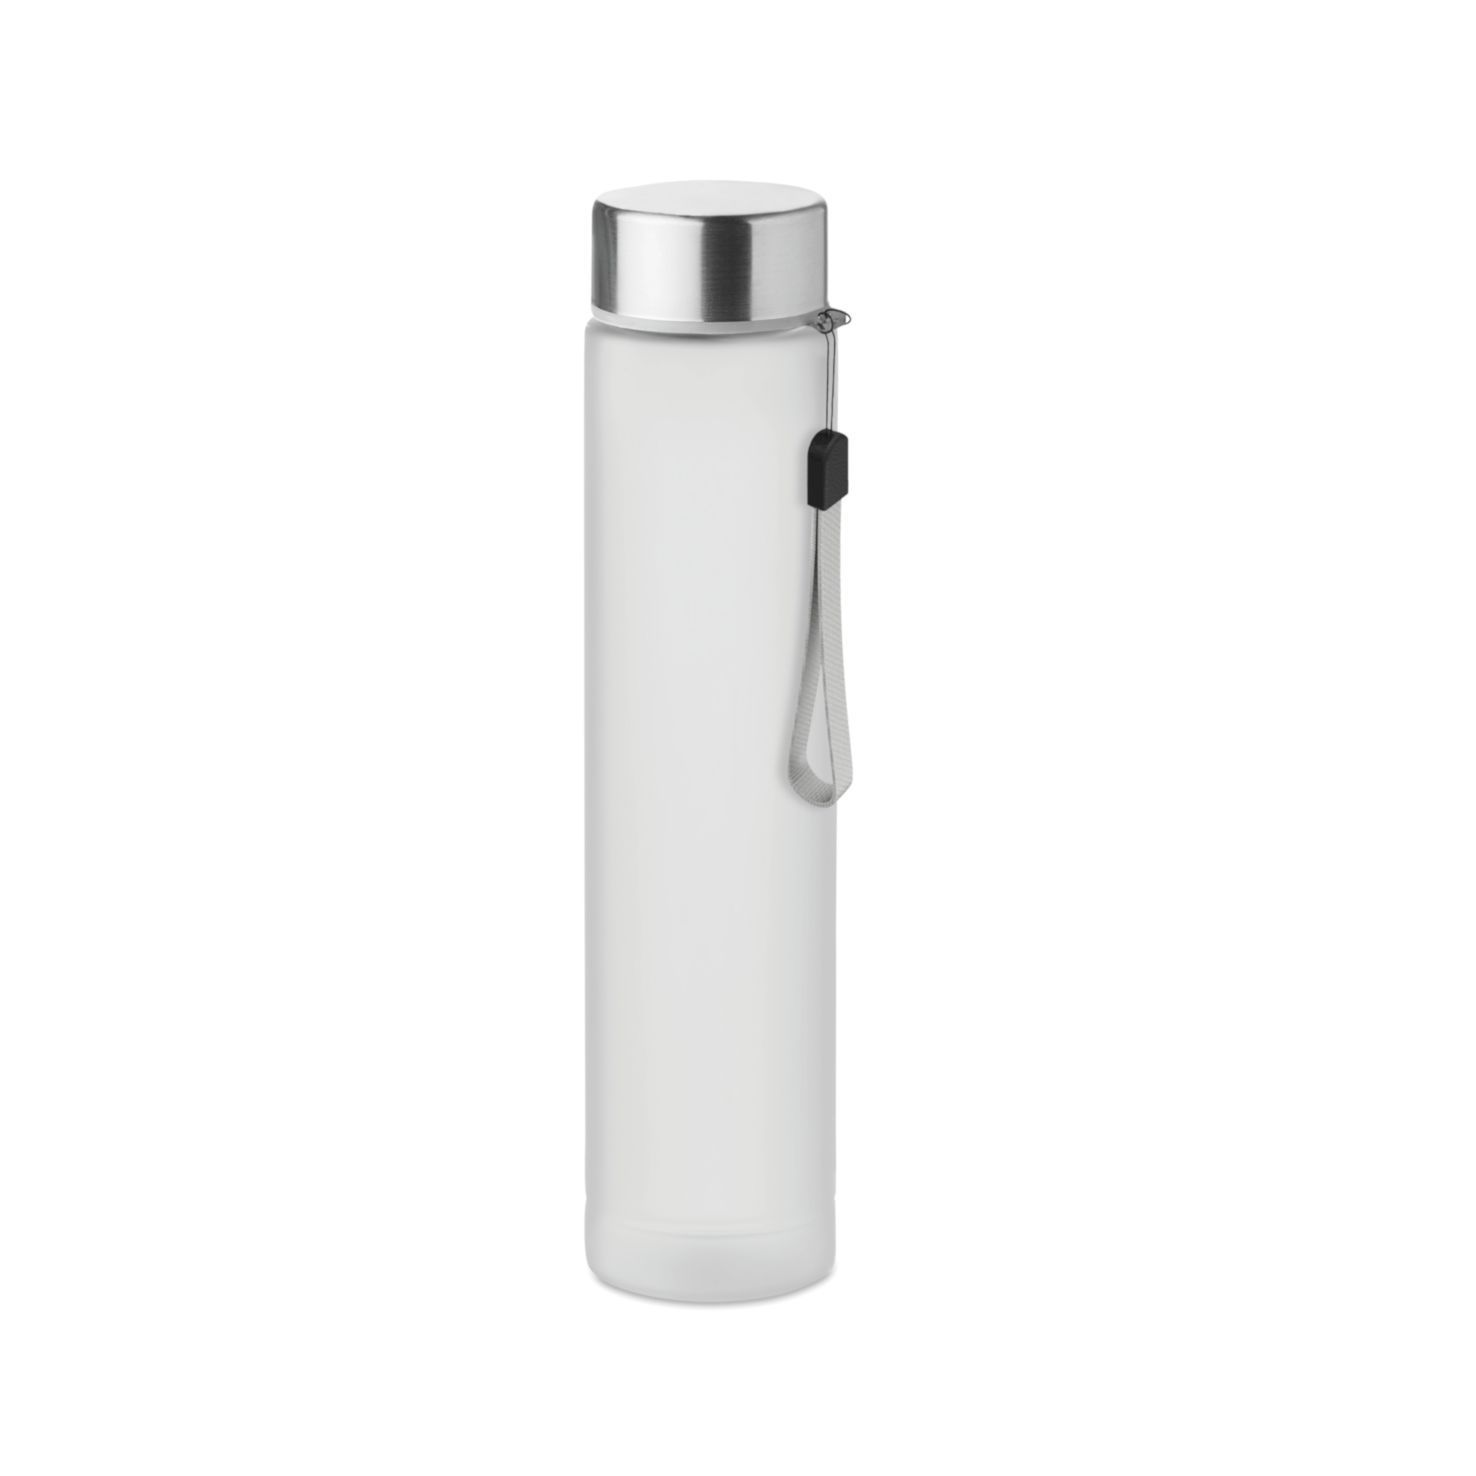 Witte Waterfles | Tritan materiaal | 300 ml